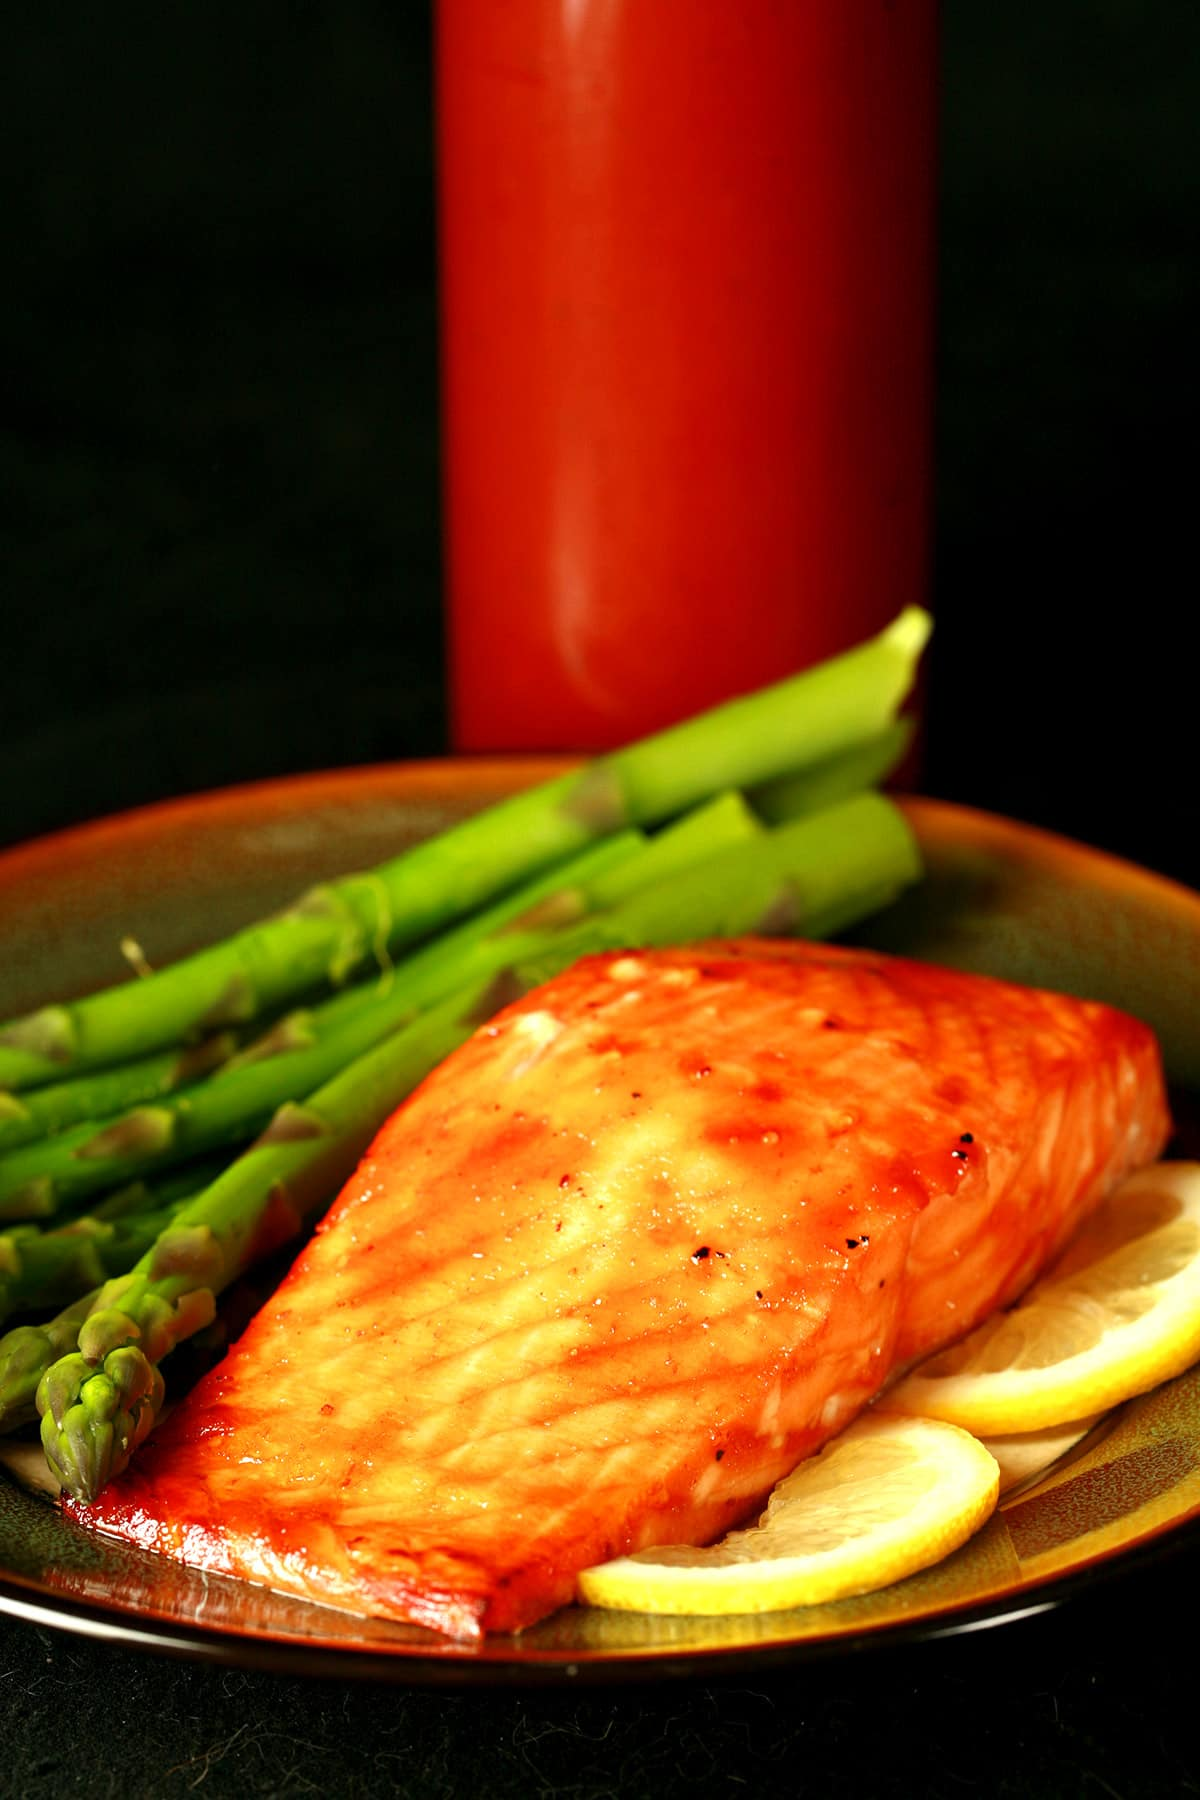 A baked salmon filet, with roasted asparagus. The salmon is coated in replica Diana Maple Sauce. A bottle of the sauce rests behind the plate of food.